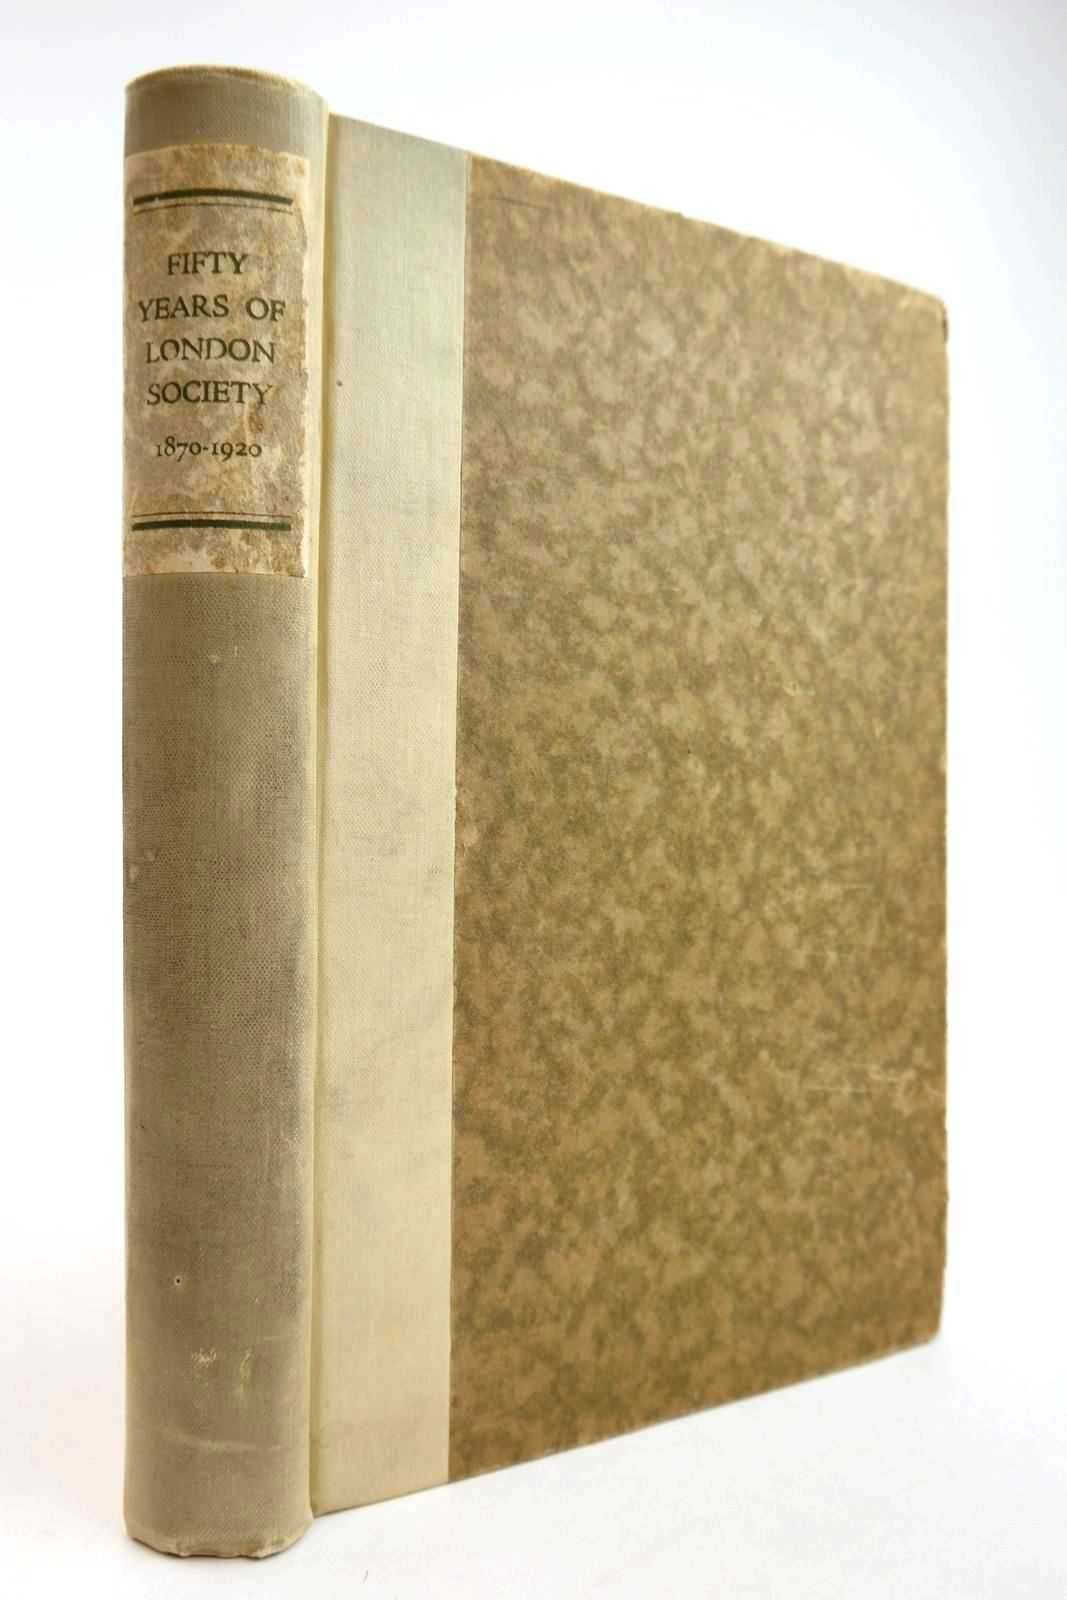 Photo of FIFTY YEARS OF LONDON SOCIETY 1870-1920 published by Brentano's (STOCK CODE: 2134068)  for sale by Stella & Rose's Books